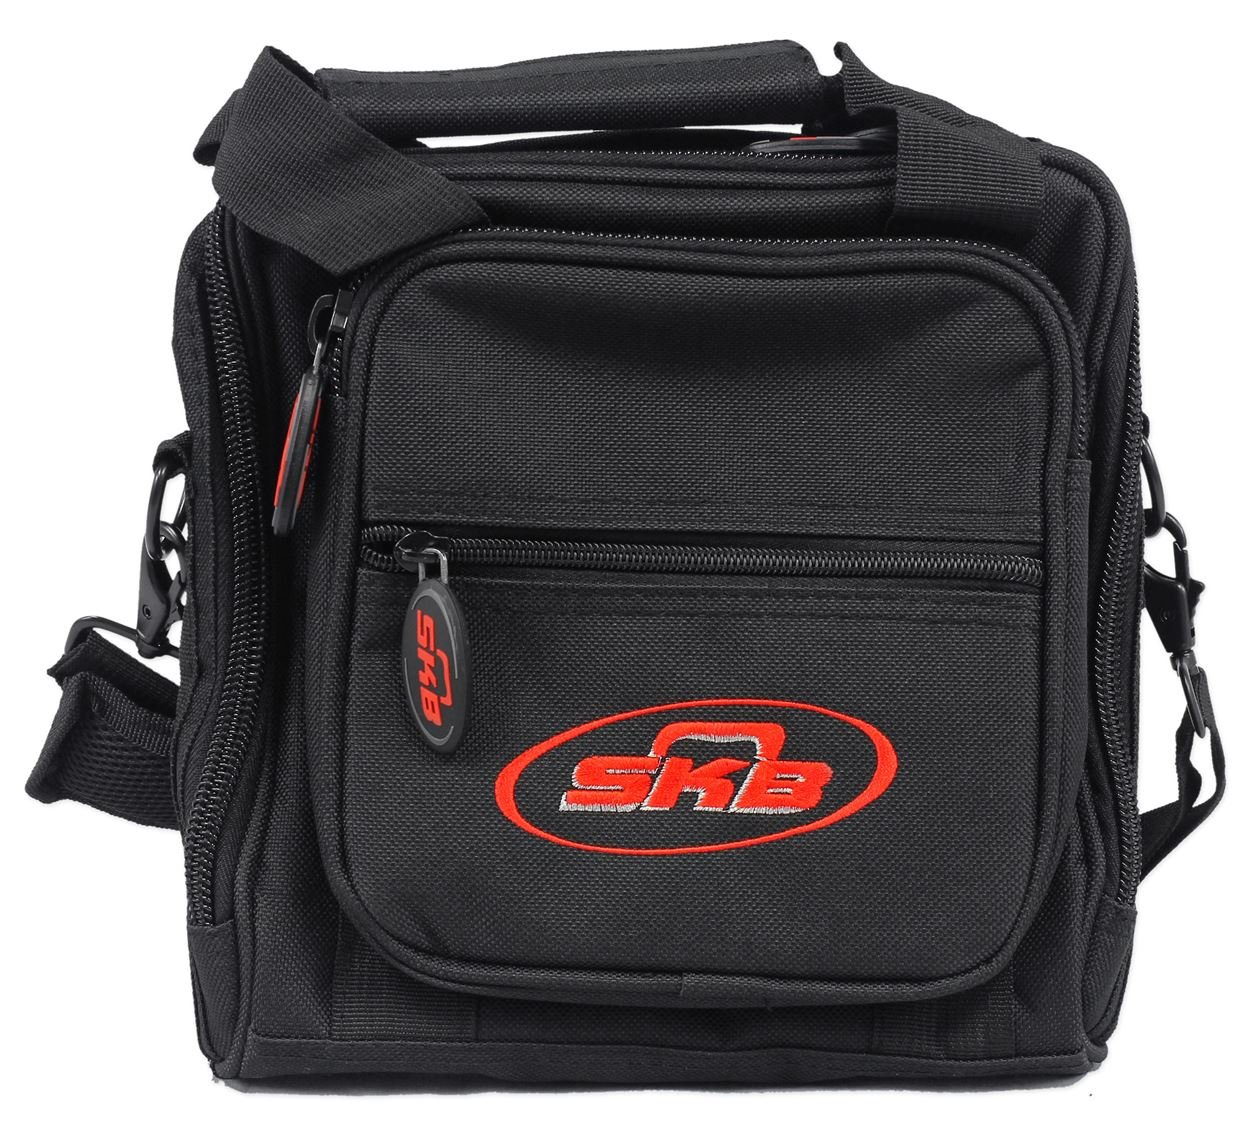 SKB 1SKB-UB0909 9'' x 9'' Universal Mixer/Equipment Bag